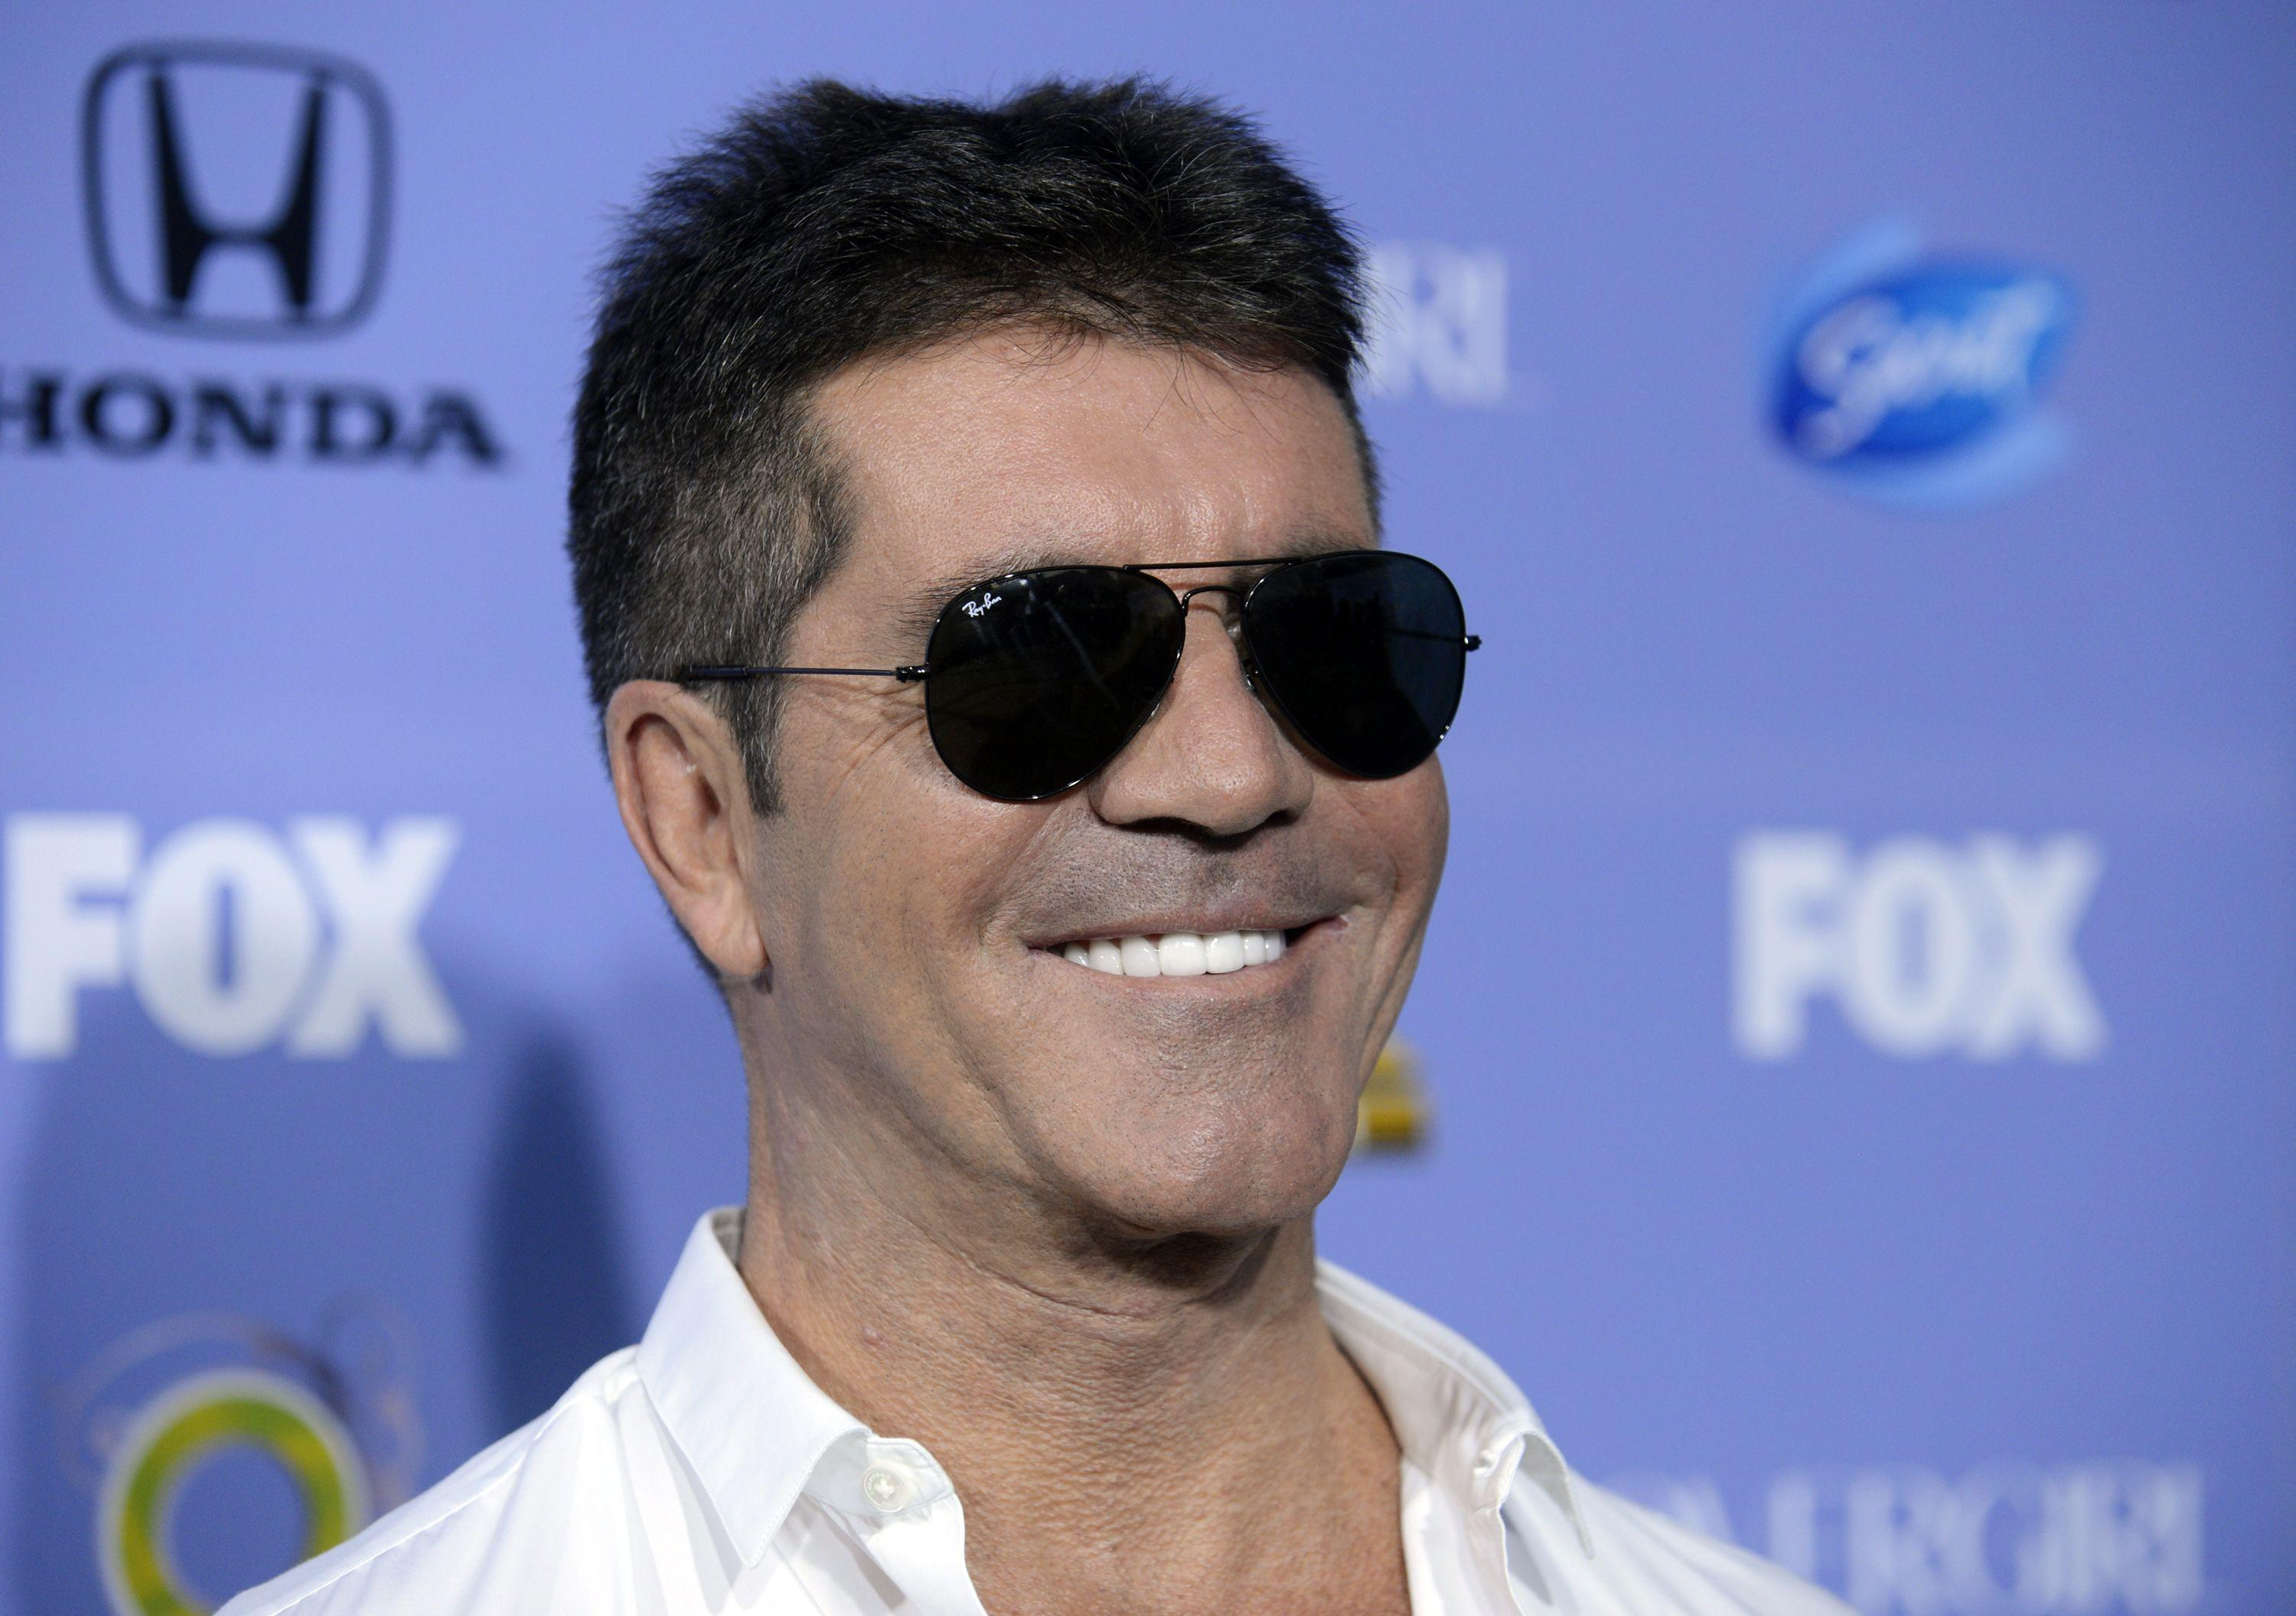 Simon Cowell Smile Wallpaper Backgrounds 57132 3000x2111 px